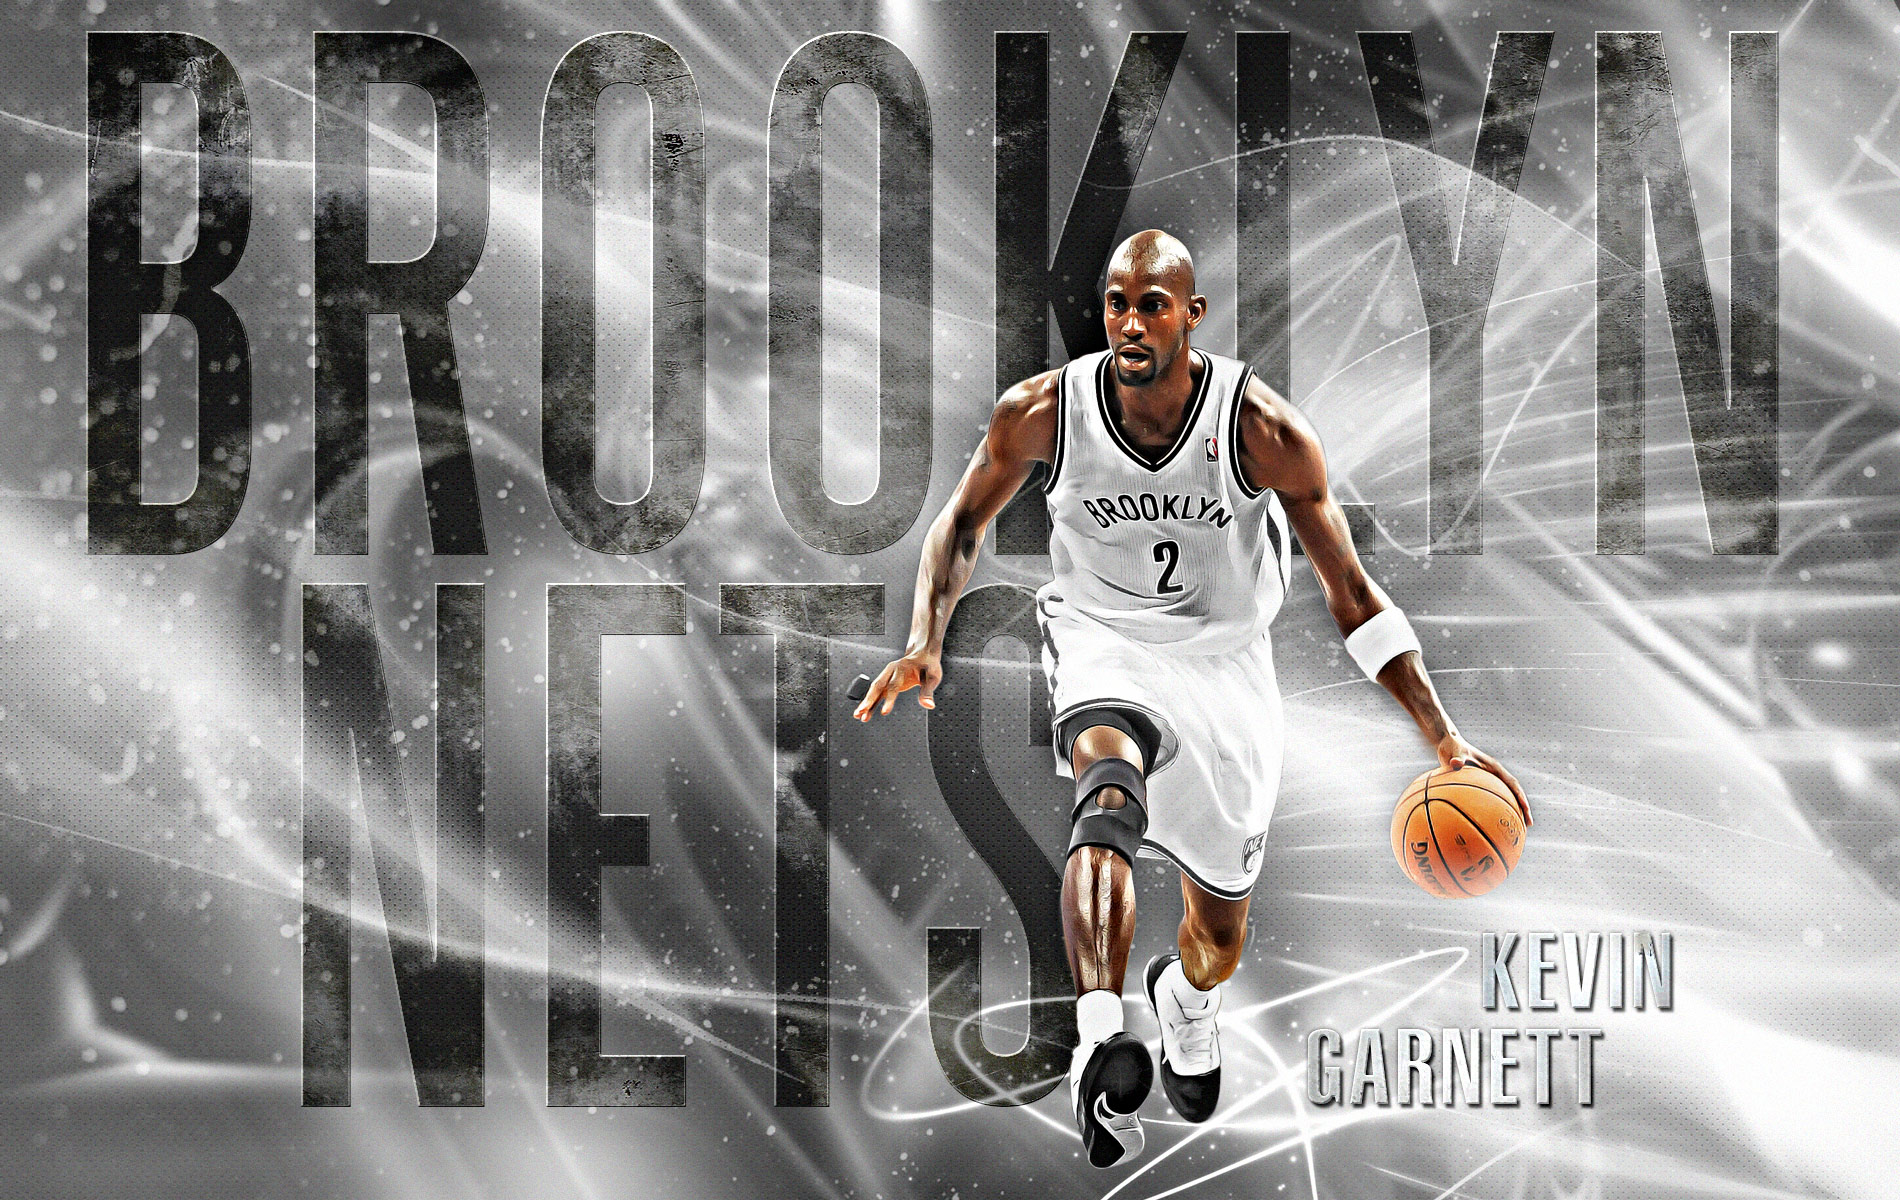 Kevin Garnett Wallpapers Basketball Wallpapers at 1900x1200